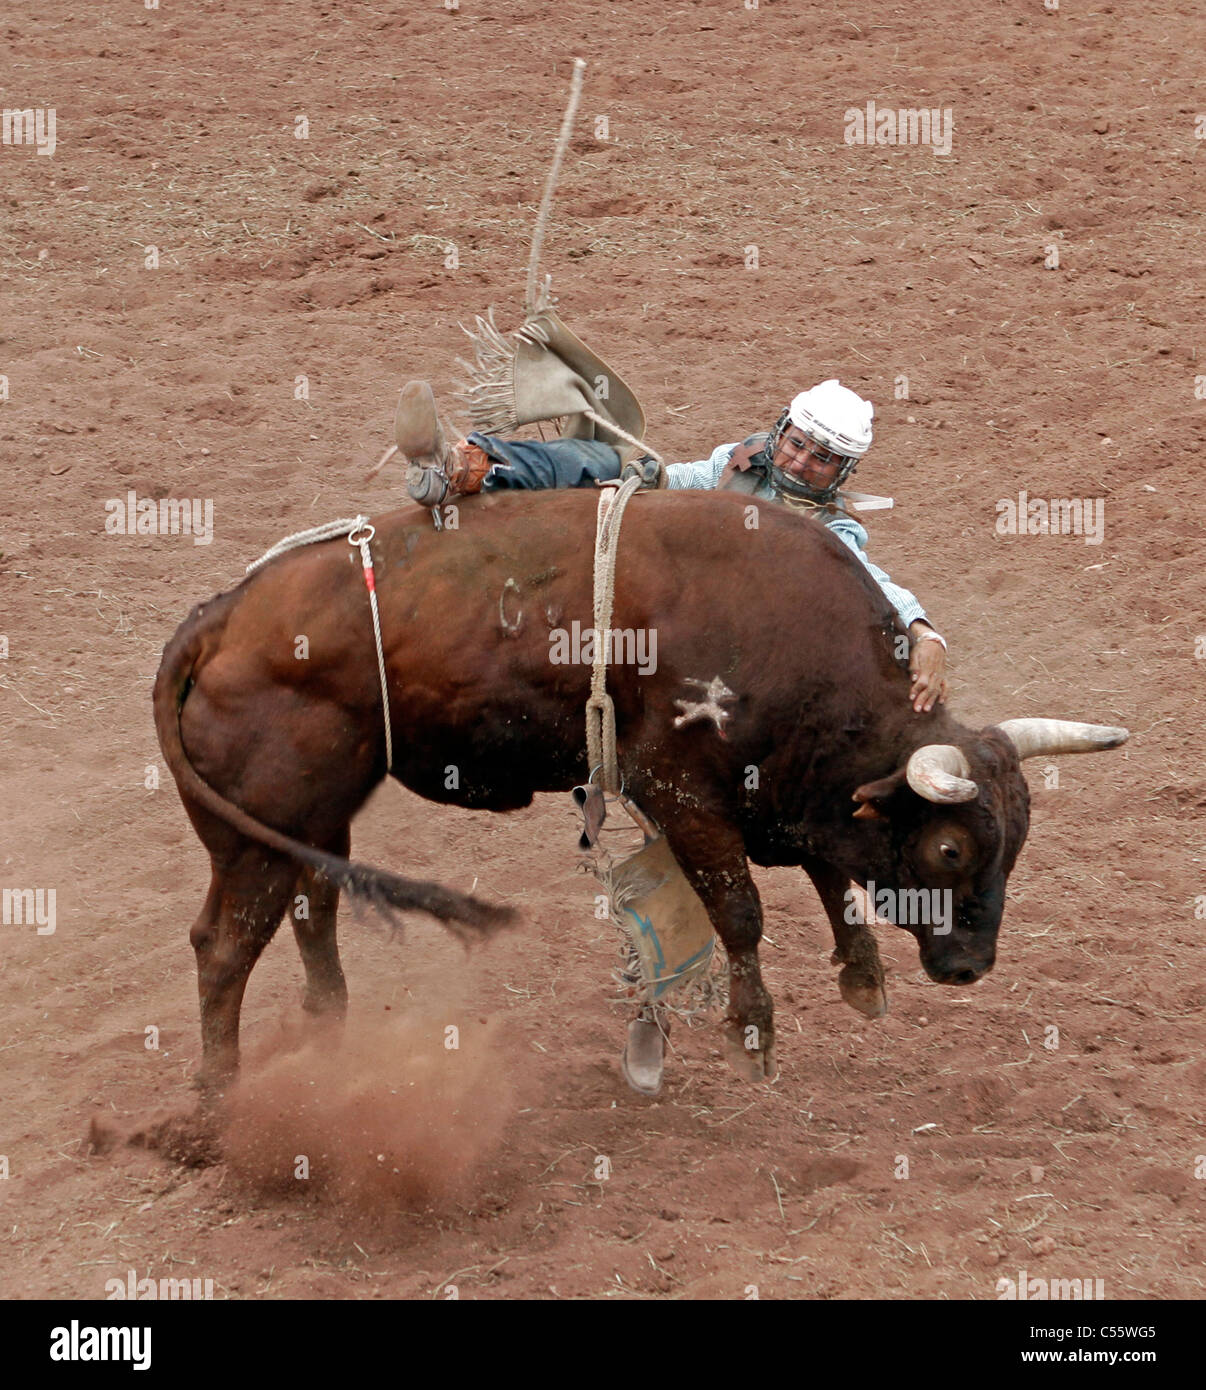 Competitor falling during the bull riding event at the Annual Indian Rodeo held in Mescalero, New Mexico. - Stock Image